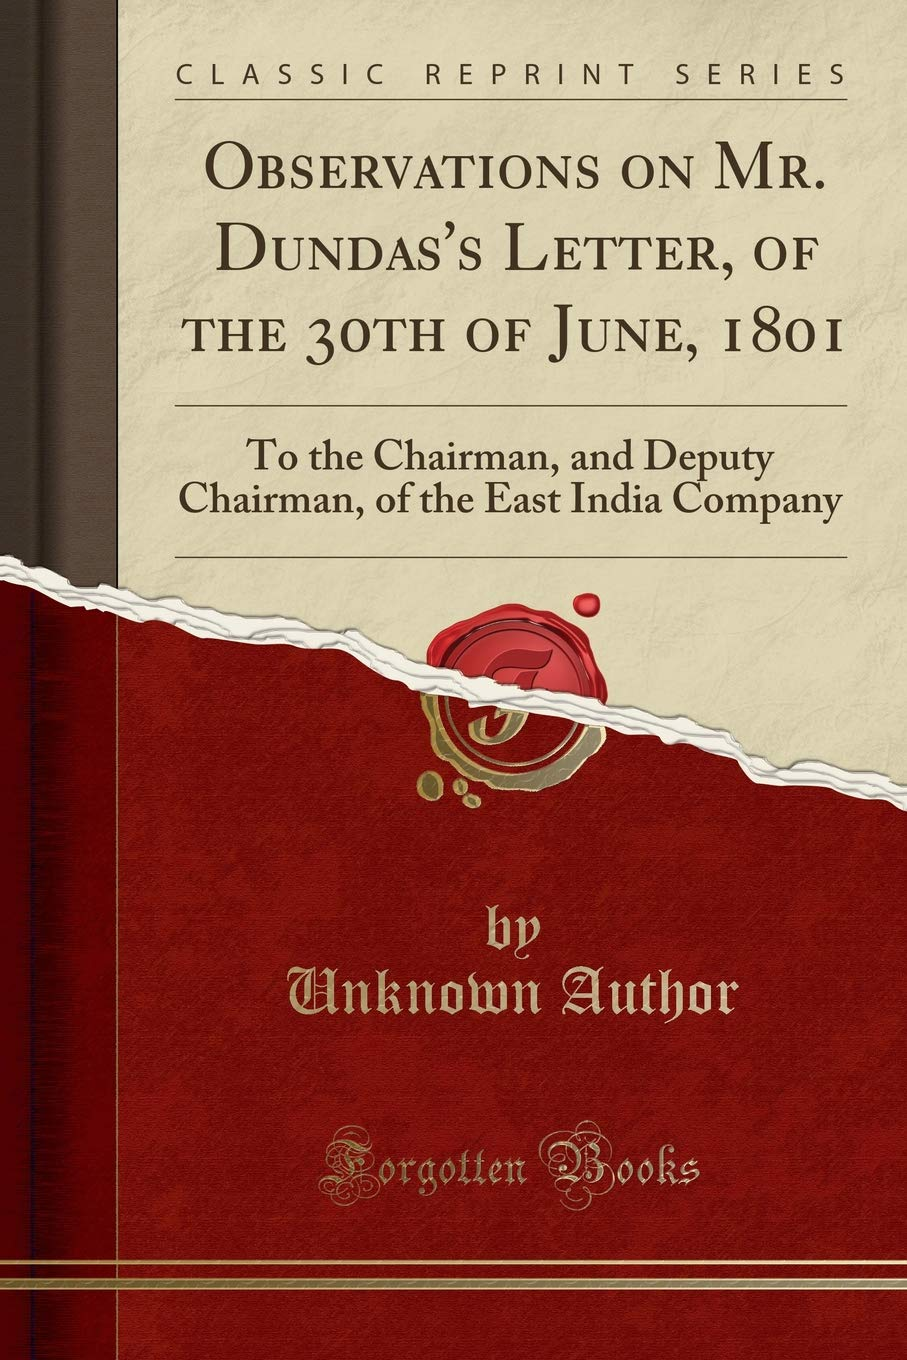 Read Online Observations on Mr. Dundas's Letter, of the 30th of June, 1801: To the Chairman, and Deputy Chairman, of the East India Company (Classic Reprint) PDF ePub fb2 book